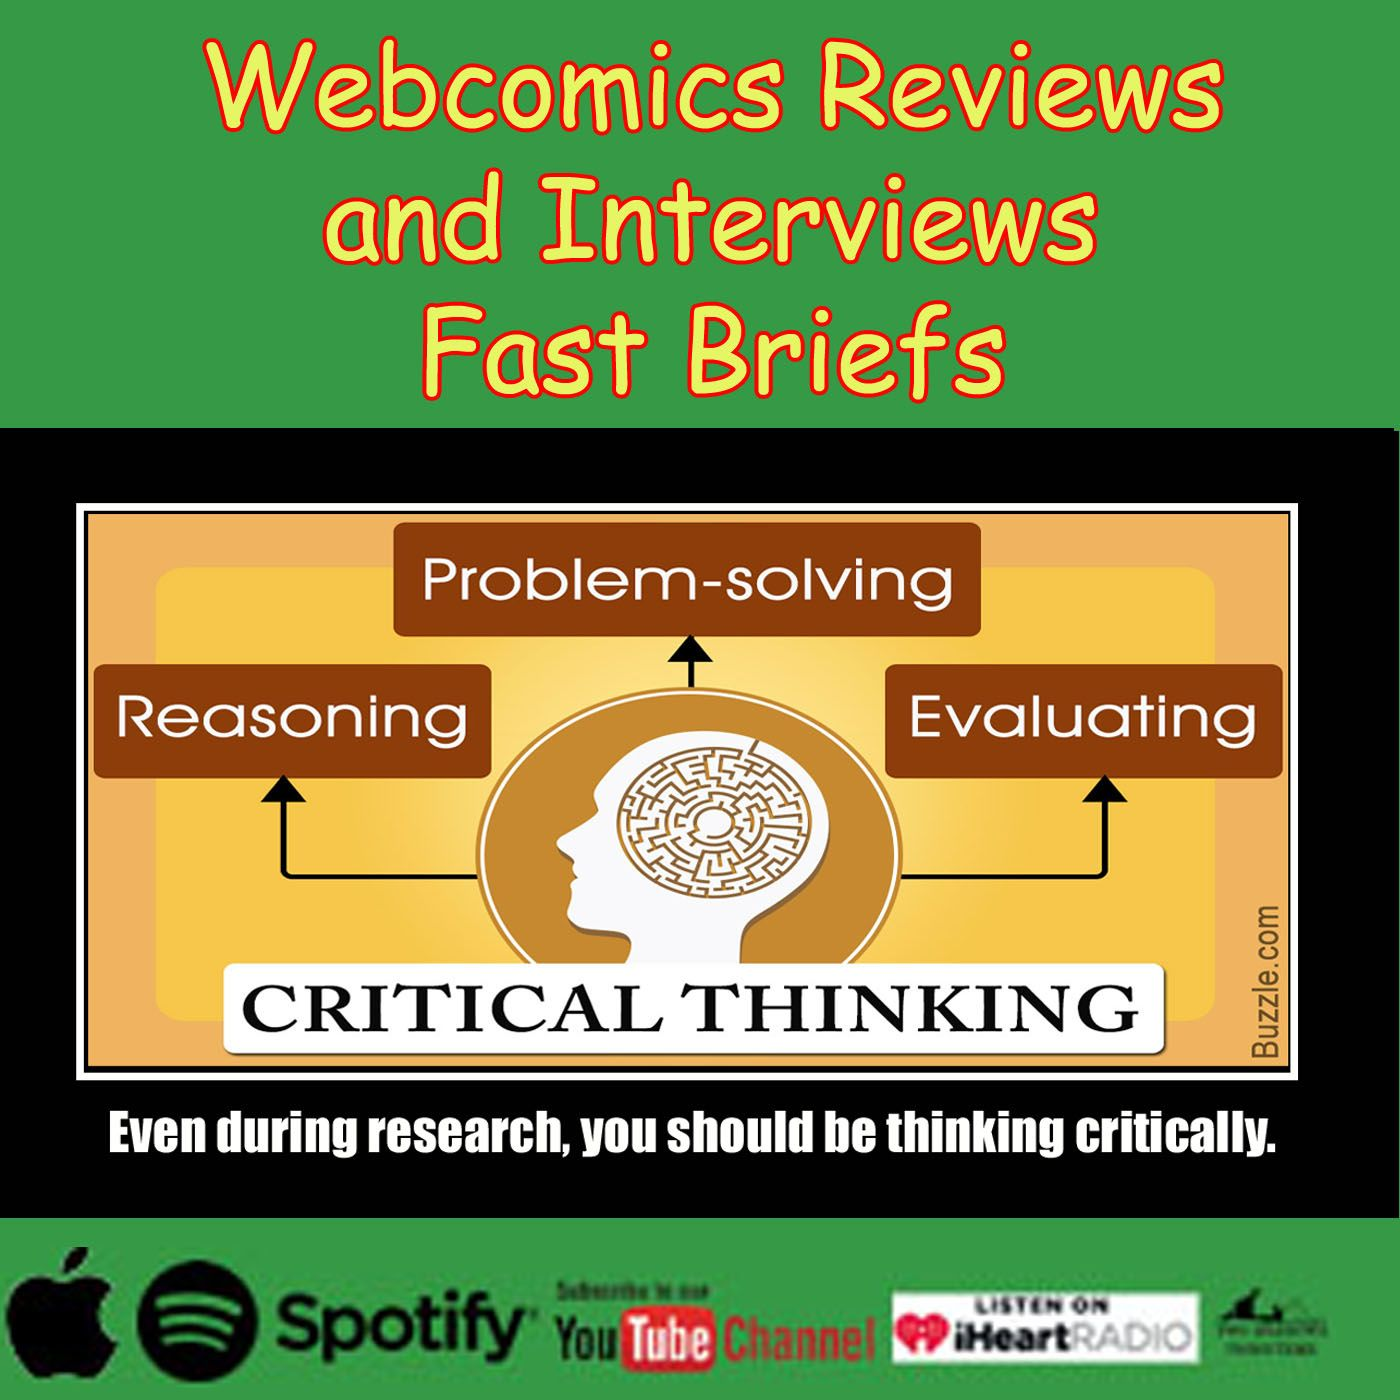 Apply Critical Thinking